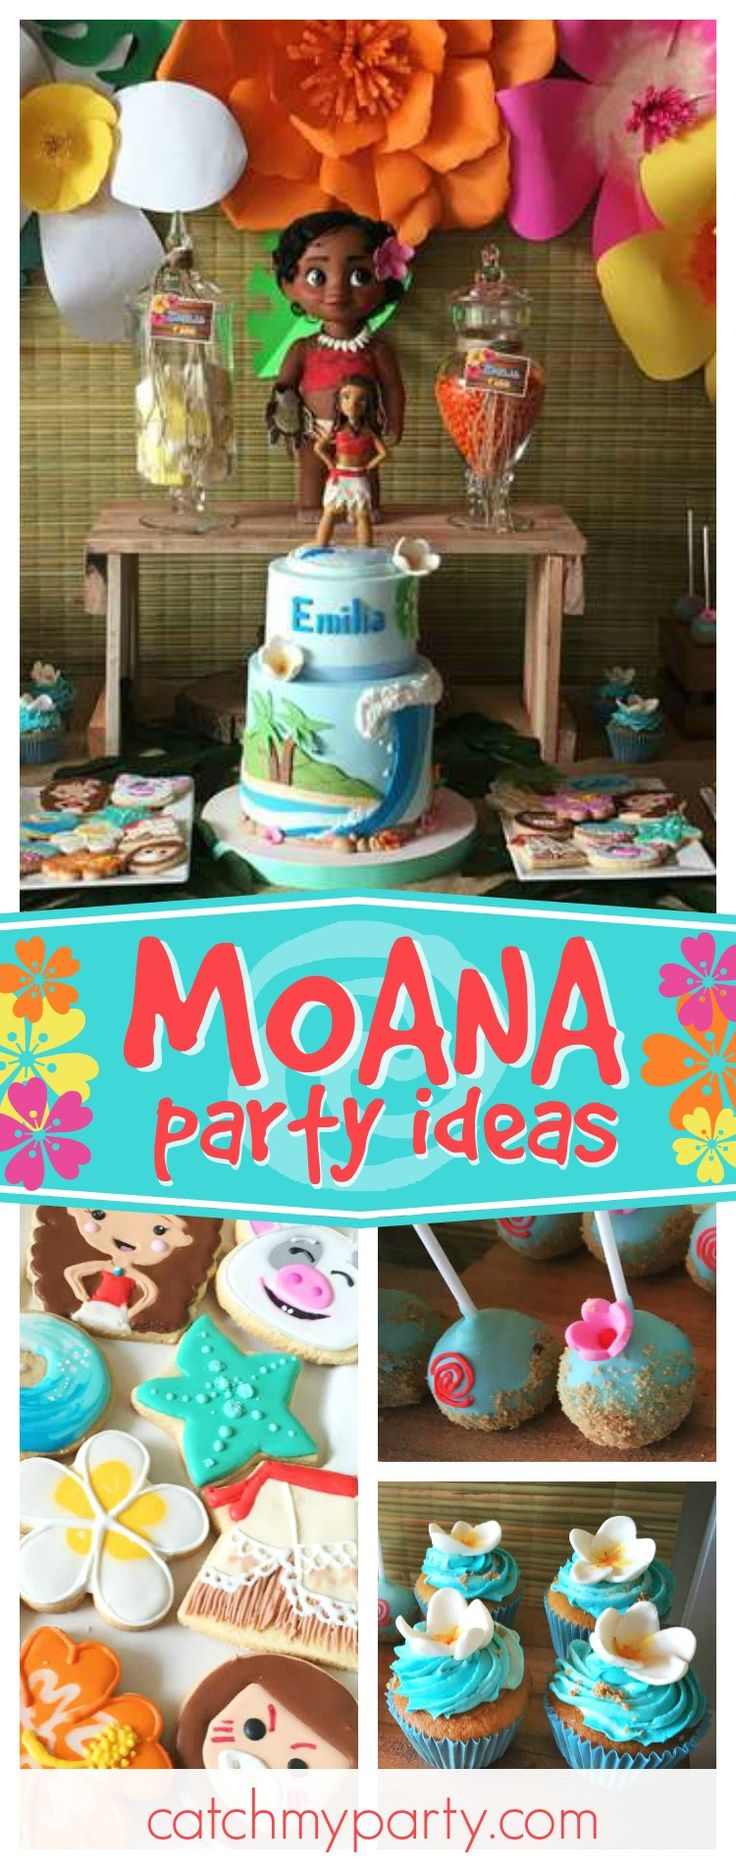 Party goodie bag ideas for girls on birthday cakes for girls 3 years - Moana Party Birthday Moana Party 5th Birthdaygirl